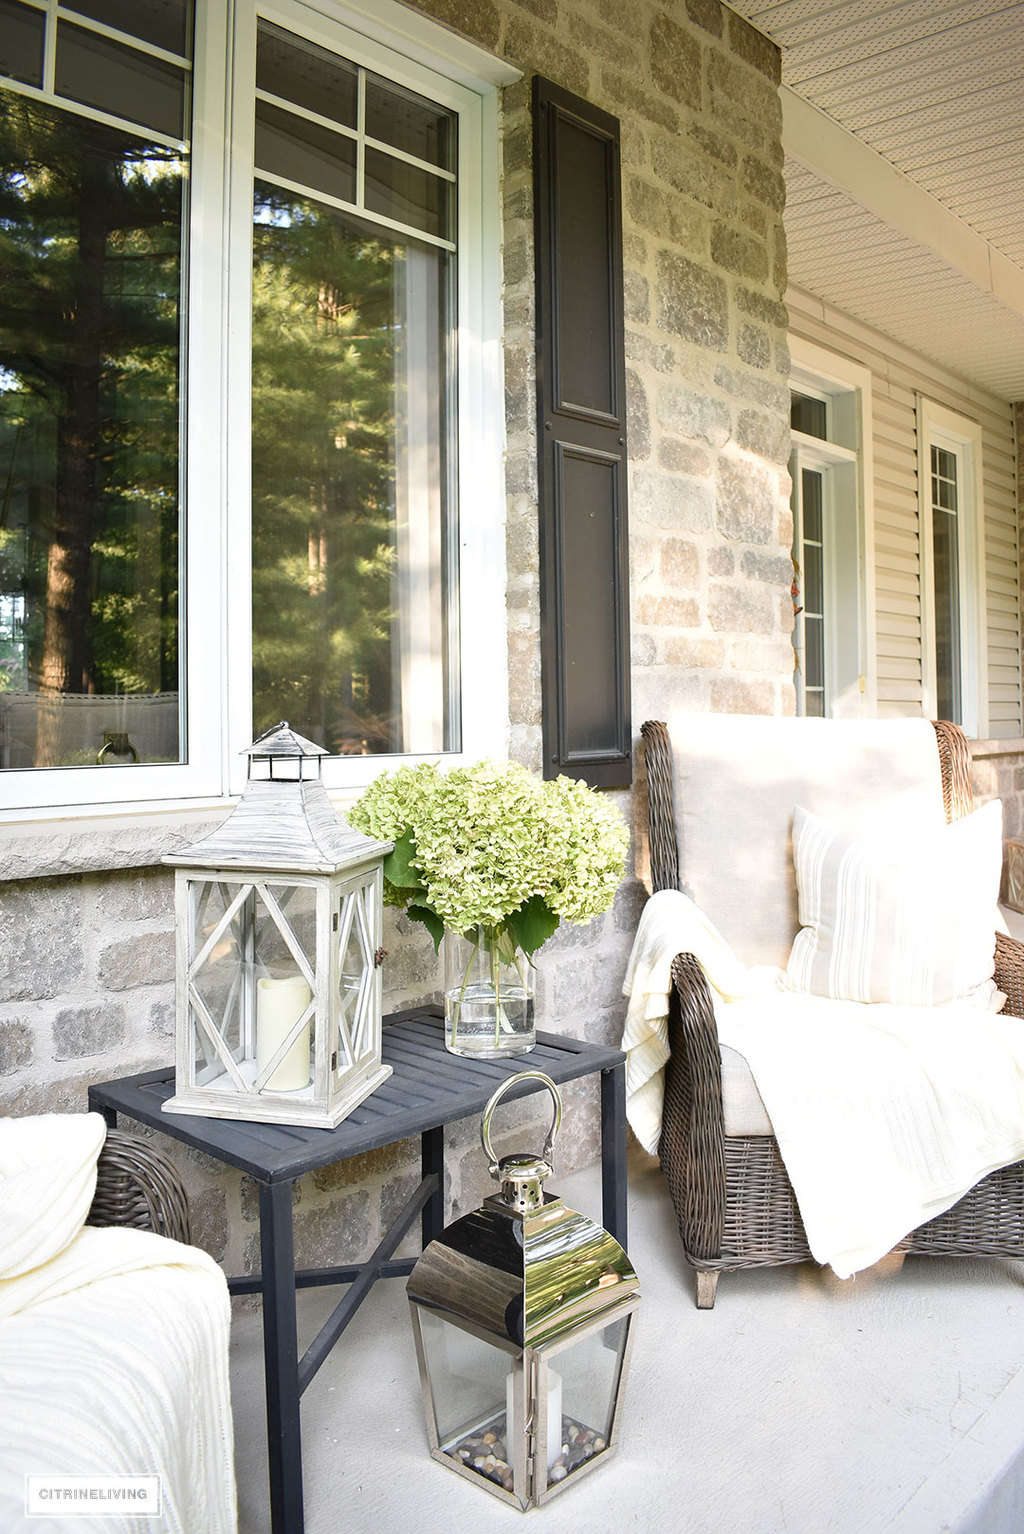 Create a cozy seating nook on your front porch this Fall, layered with blankets, fresh hydrangeas and lanterns.